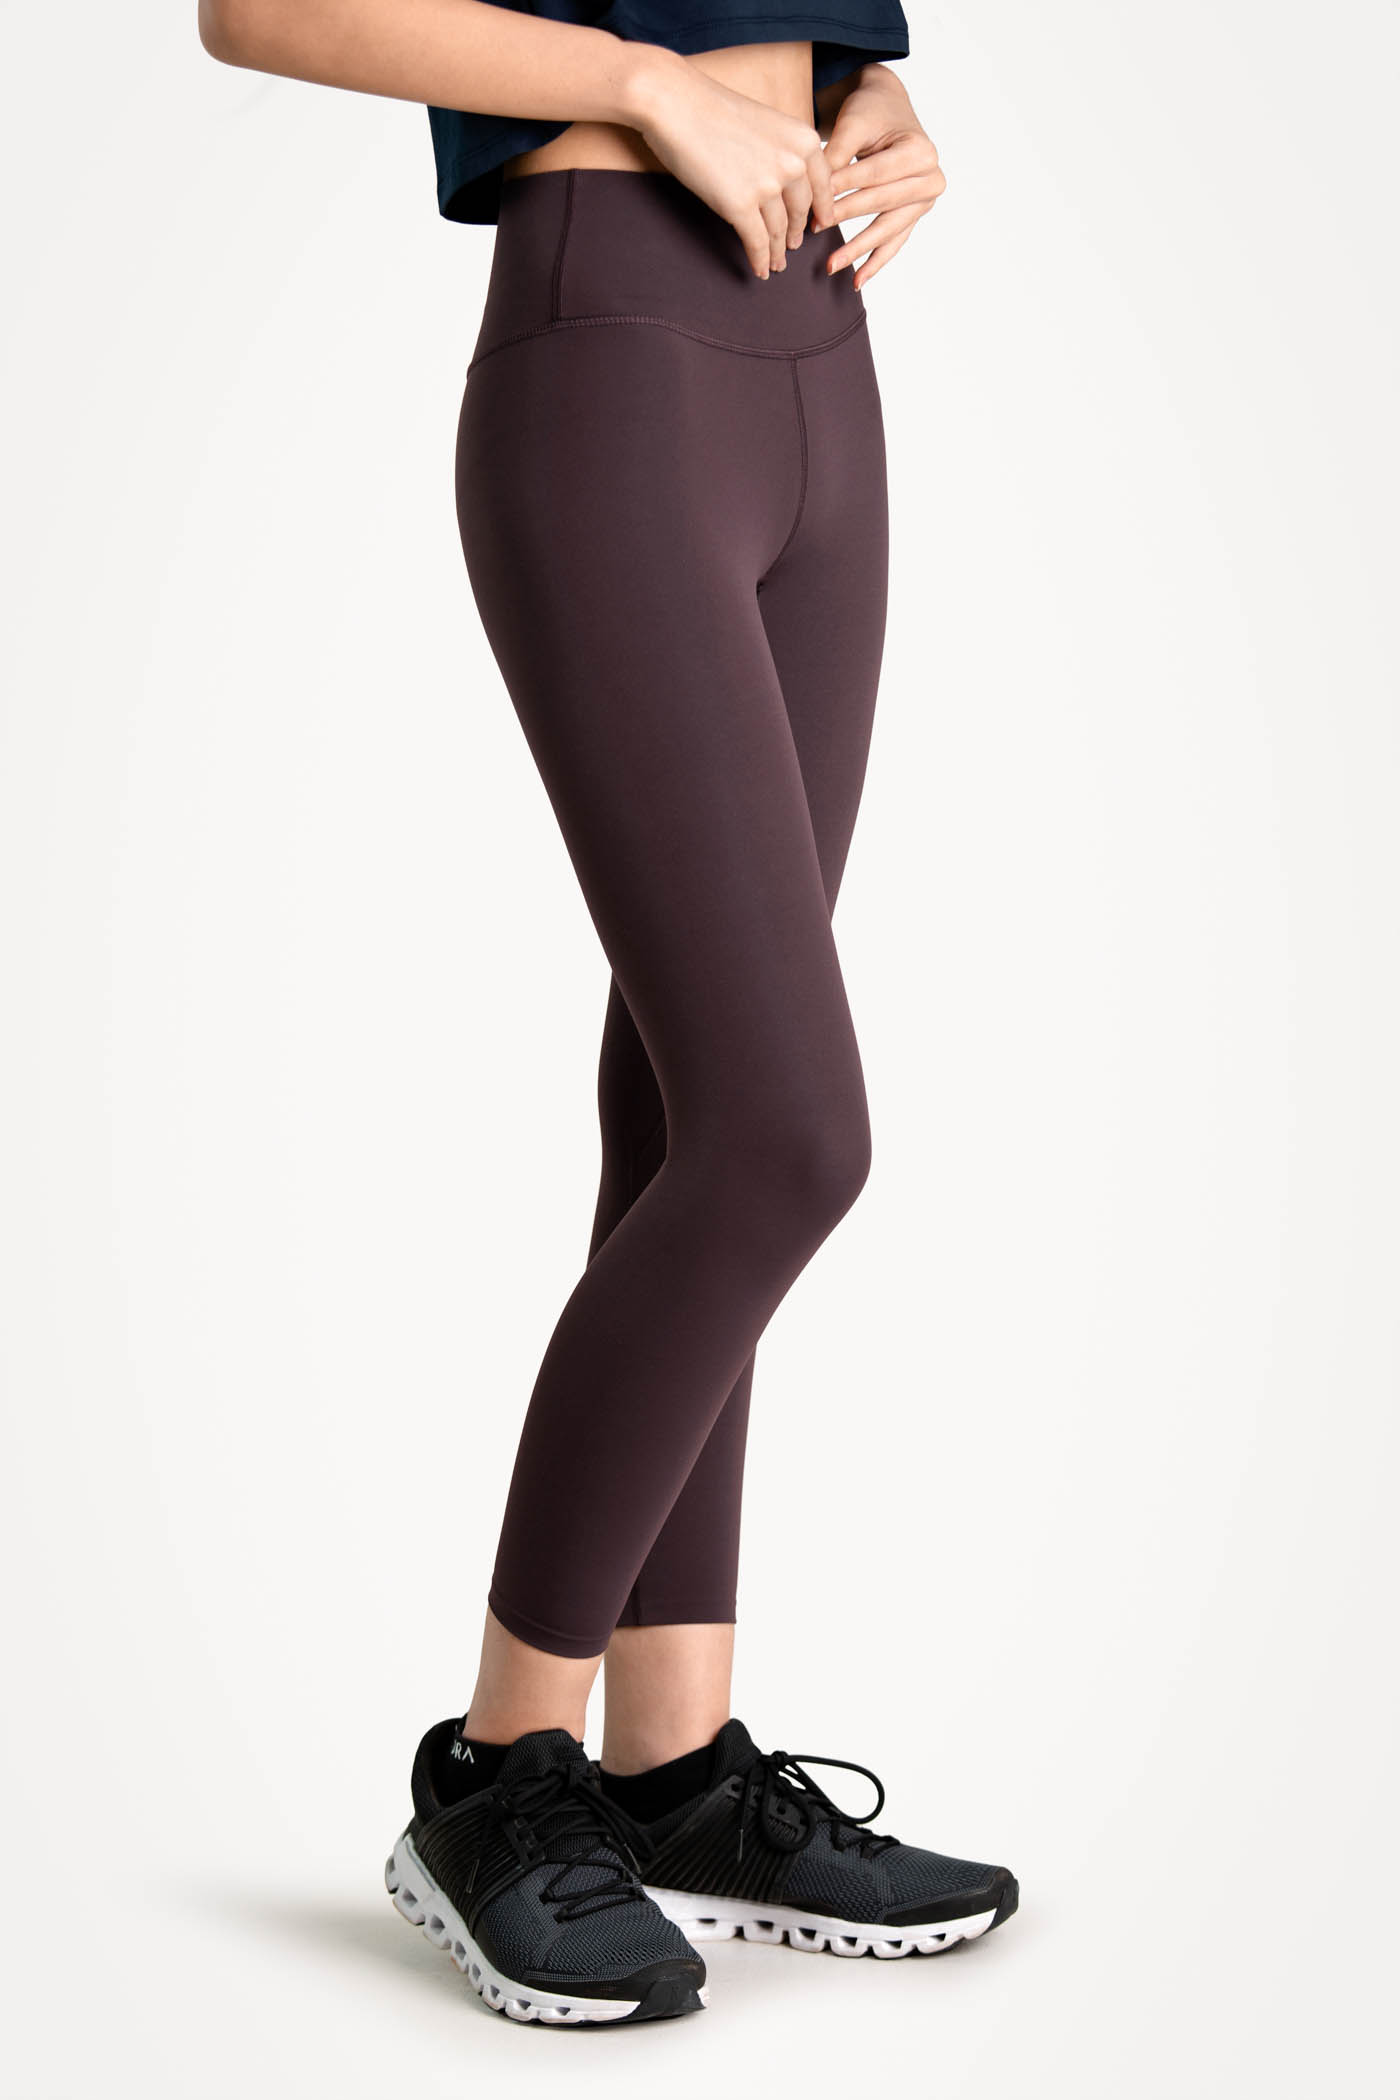 Kydra 7/8 Kyro Leggings